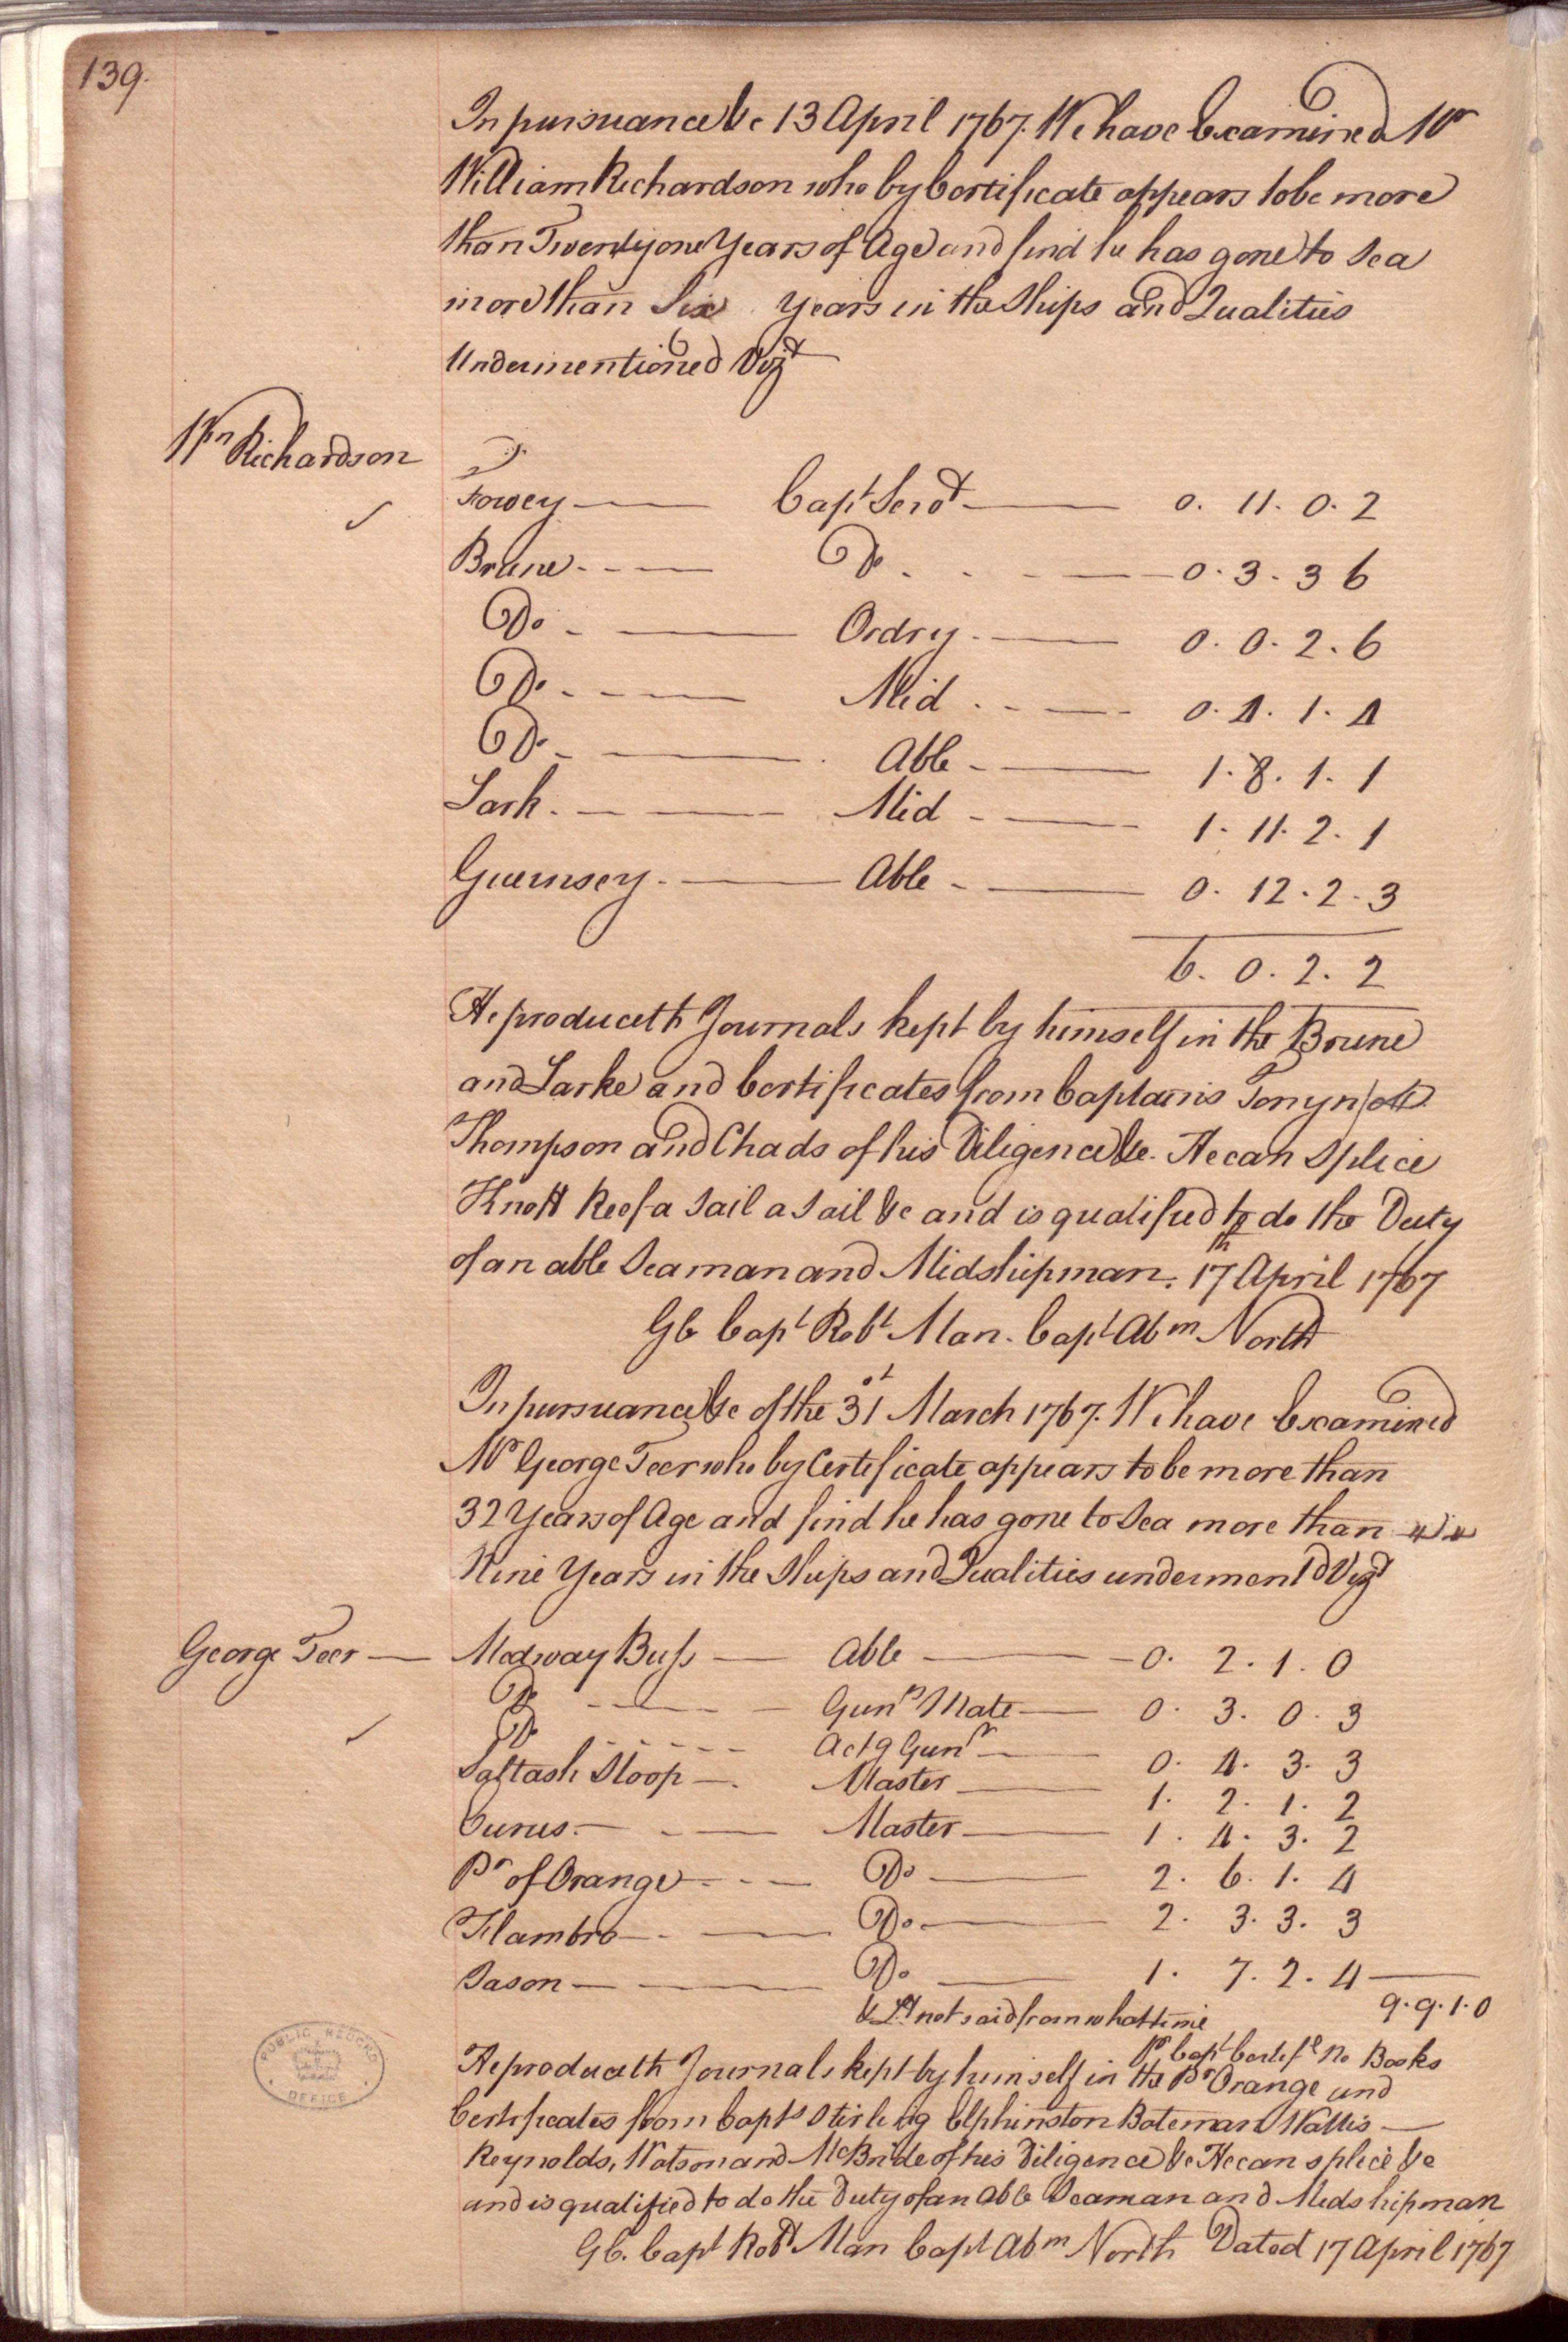 William Richardson's Lieutenant's Passing Certificate of 17 April 1767 takes up the top half of this page. (ADM 107/6, 139)